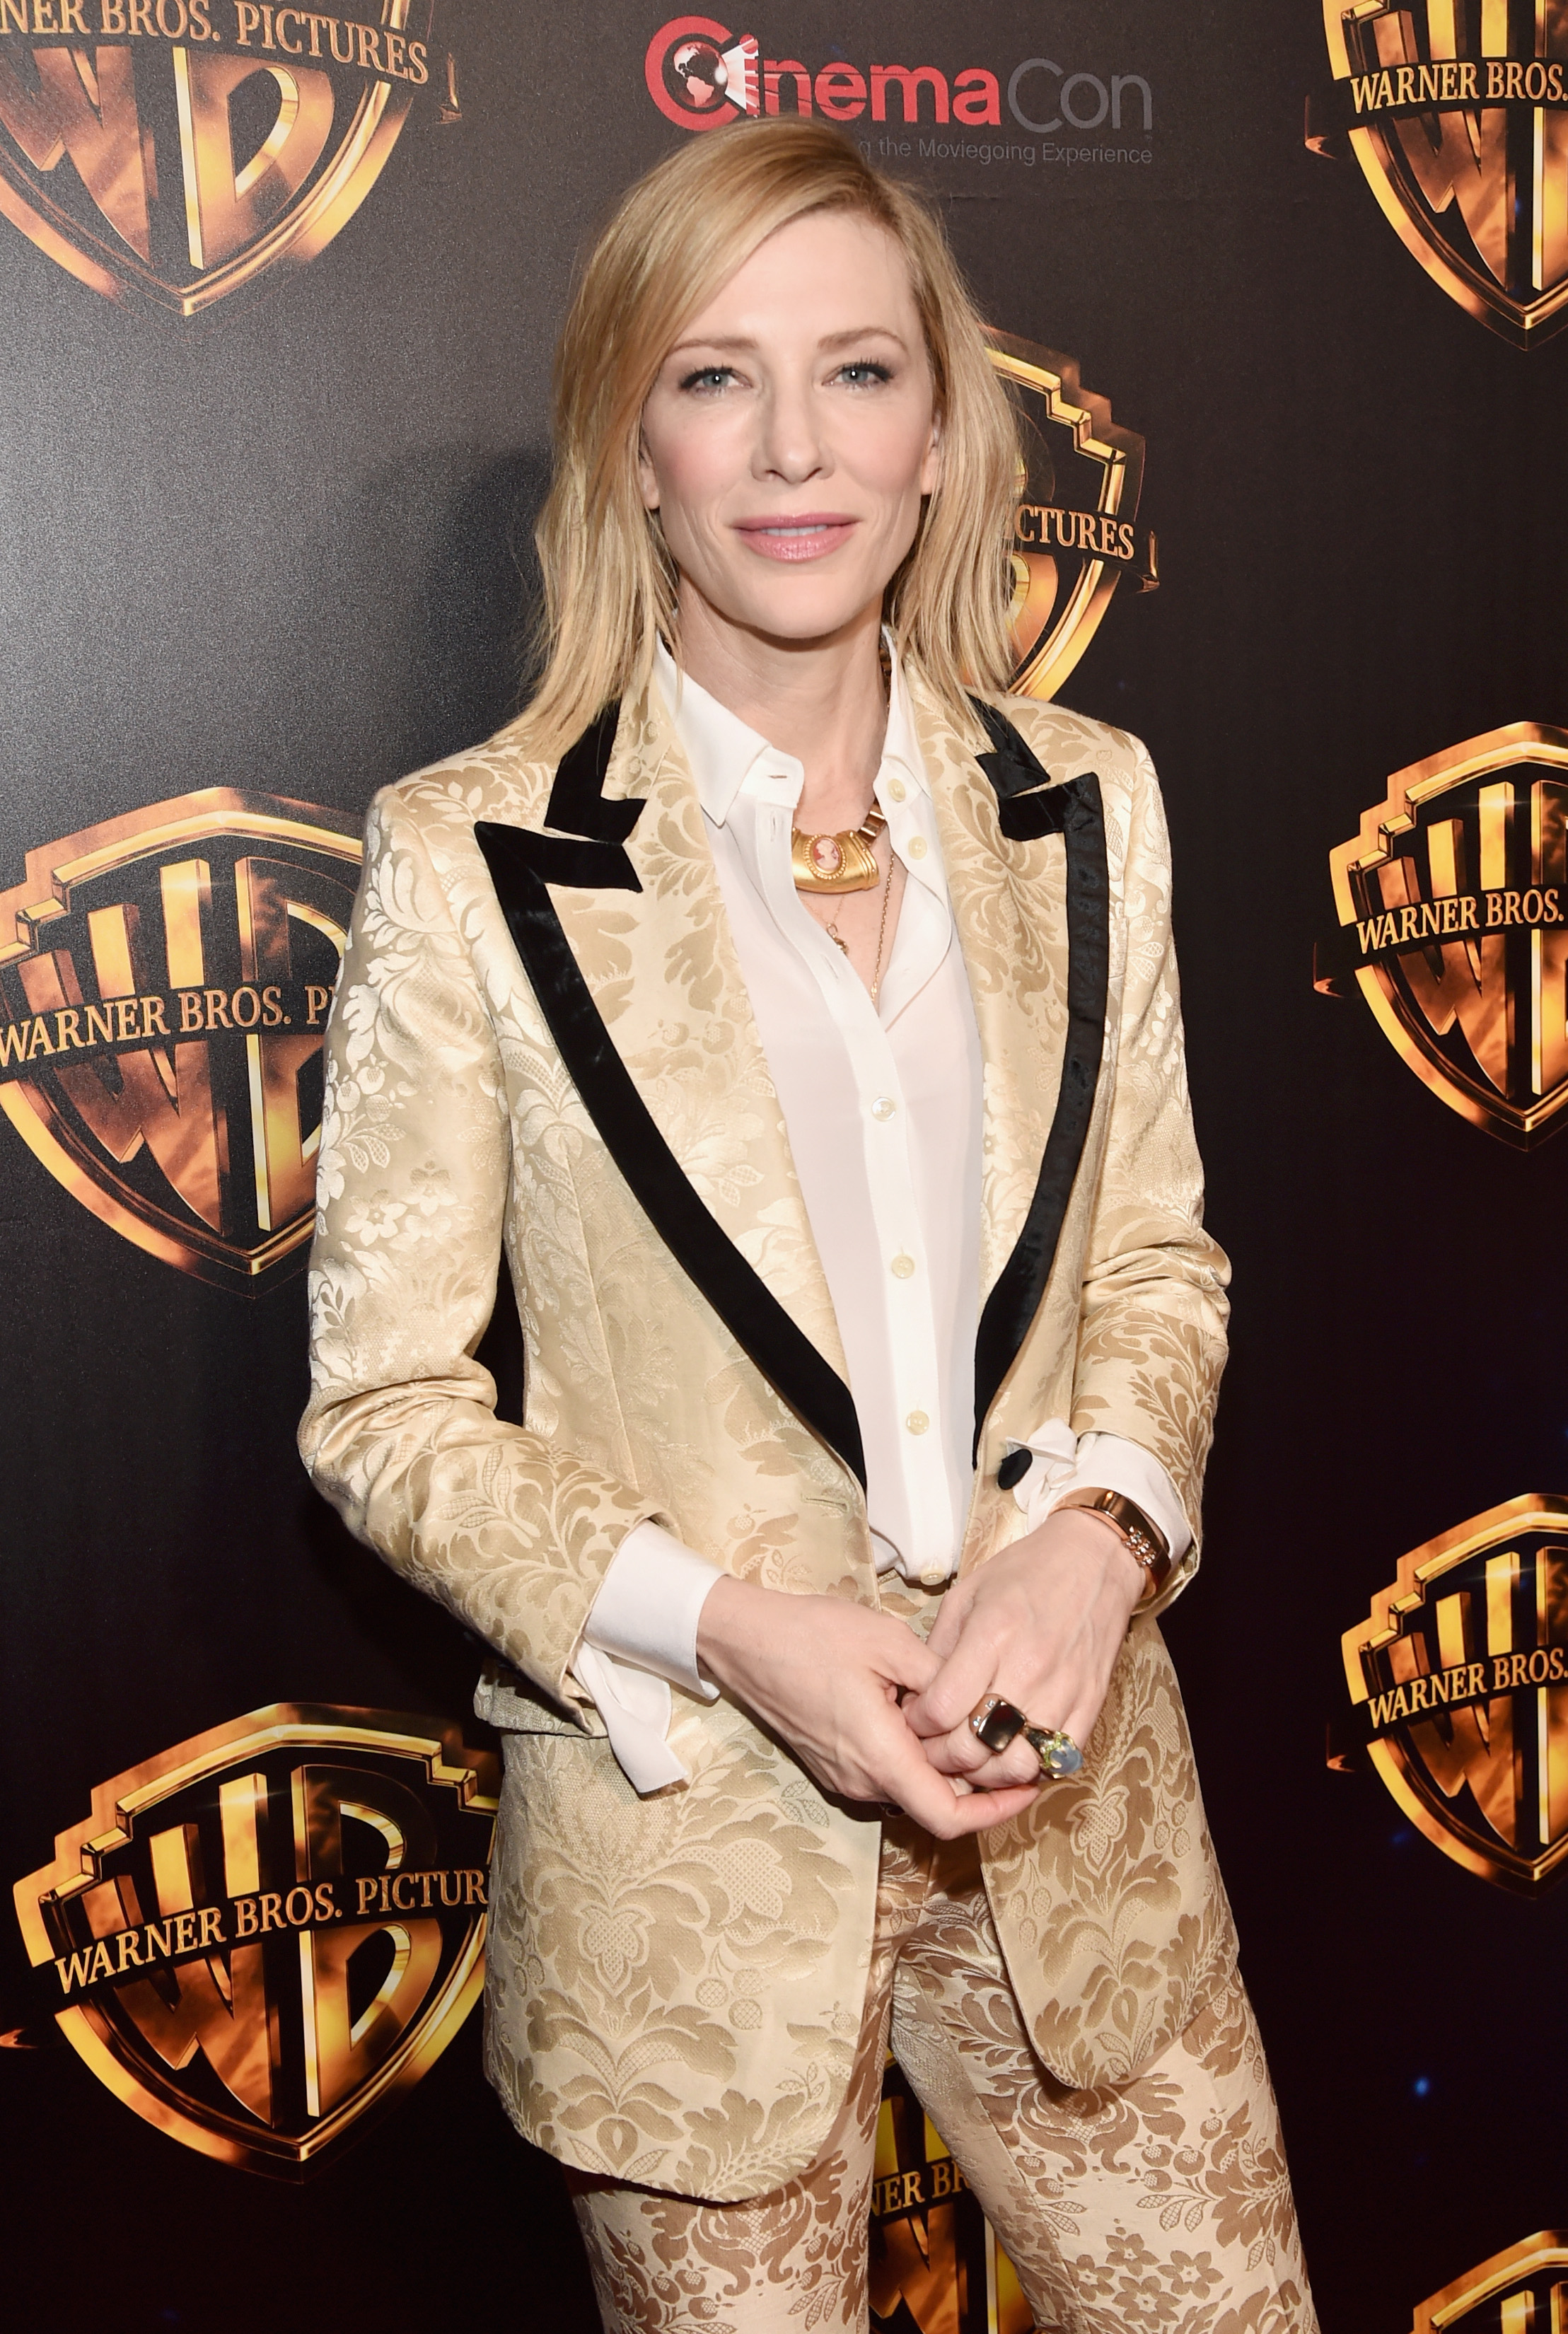 <p>Pantsuits have become the go-to uniform for A-listers such as Rita Ora, Olivia Palermo and Kim Kardashian, when they want to communicate the kind of confidence a sheer gown just can't deliver.</p> <p>Point in case, Australian actress and power-dressing aficionado Cate Blanchett.</p> <p>Earlier this week, the Babel star turned to a retro-inspired suit with a soft paisley print from Gucci for an appearance at Warner's Brother's Big Picture presentation at CinemaCon in Las Vegas.</p> <p>Blanchett's suited-up ensemble was more Bowie than Annie Hall and evoked '70s styles favoured by Mick Jagger and Prince.</p> <p>If you're going to start wearing the pants in your relationship with fashion, avoid the trap of looking like an '80s corporate raider by looking for jackets with soft shoulders, trousers that are cropped or flared and prints or pastels that add feminine force without detracting from tailoring that trumps.</p> <p>Click through to see some of our favourite ways to suit up this season.</p>